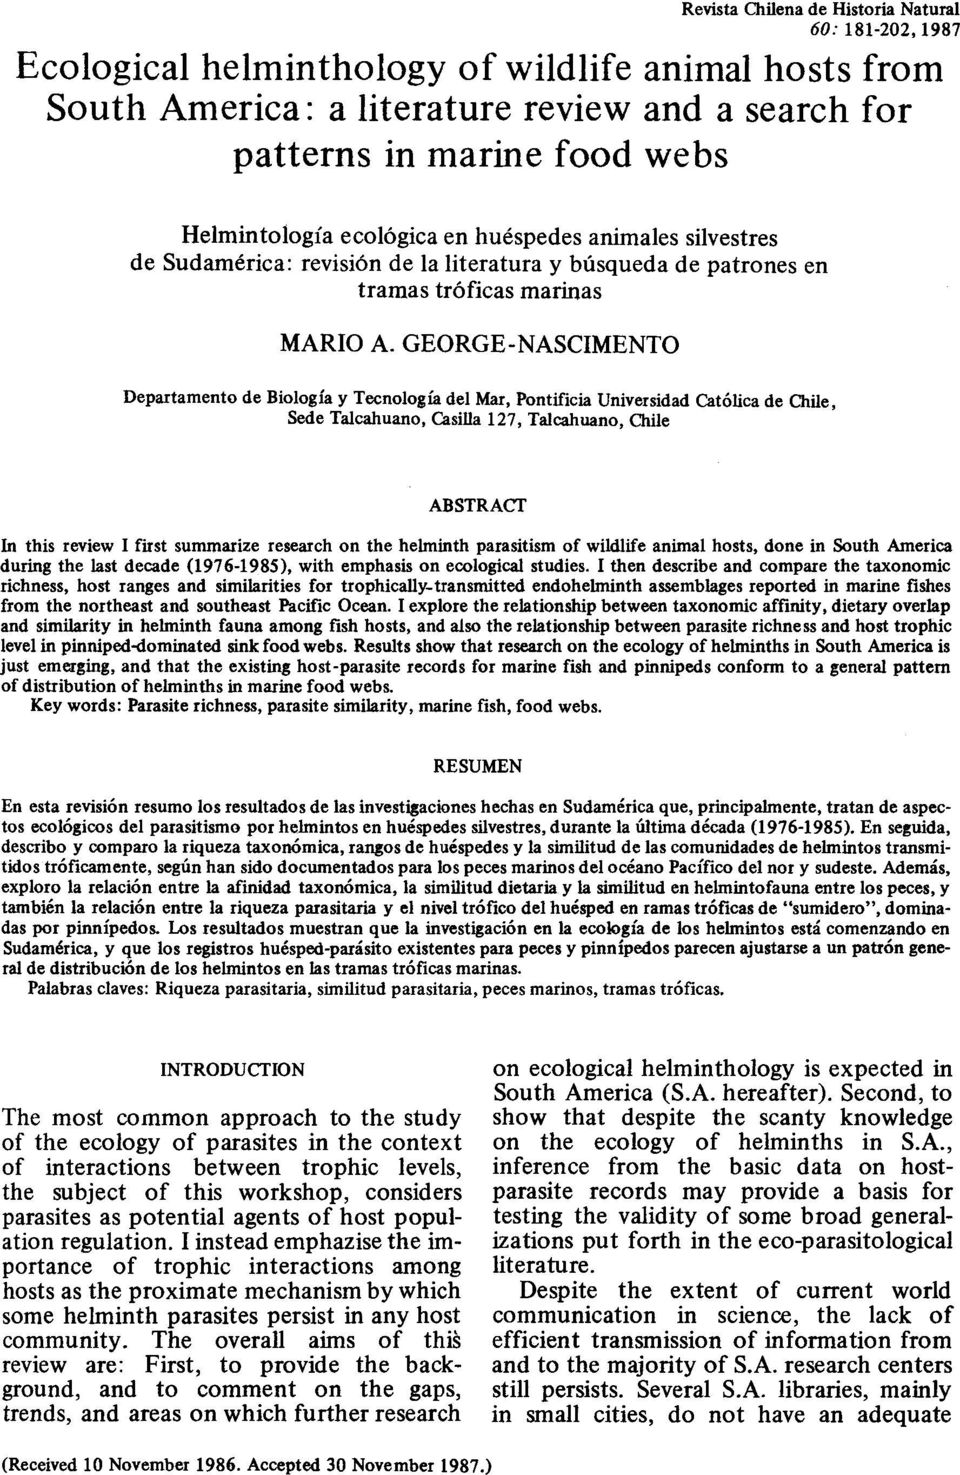 GEORGE-NASCIMENTO Departamento de Biologia y Tecnologia del Mar, Pontificia Universidad Cat6lica de Chile, Sede Talcahuano, Casilla 127, Talcahuano, Chile ABSTRACT In this review I first summarize